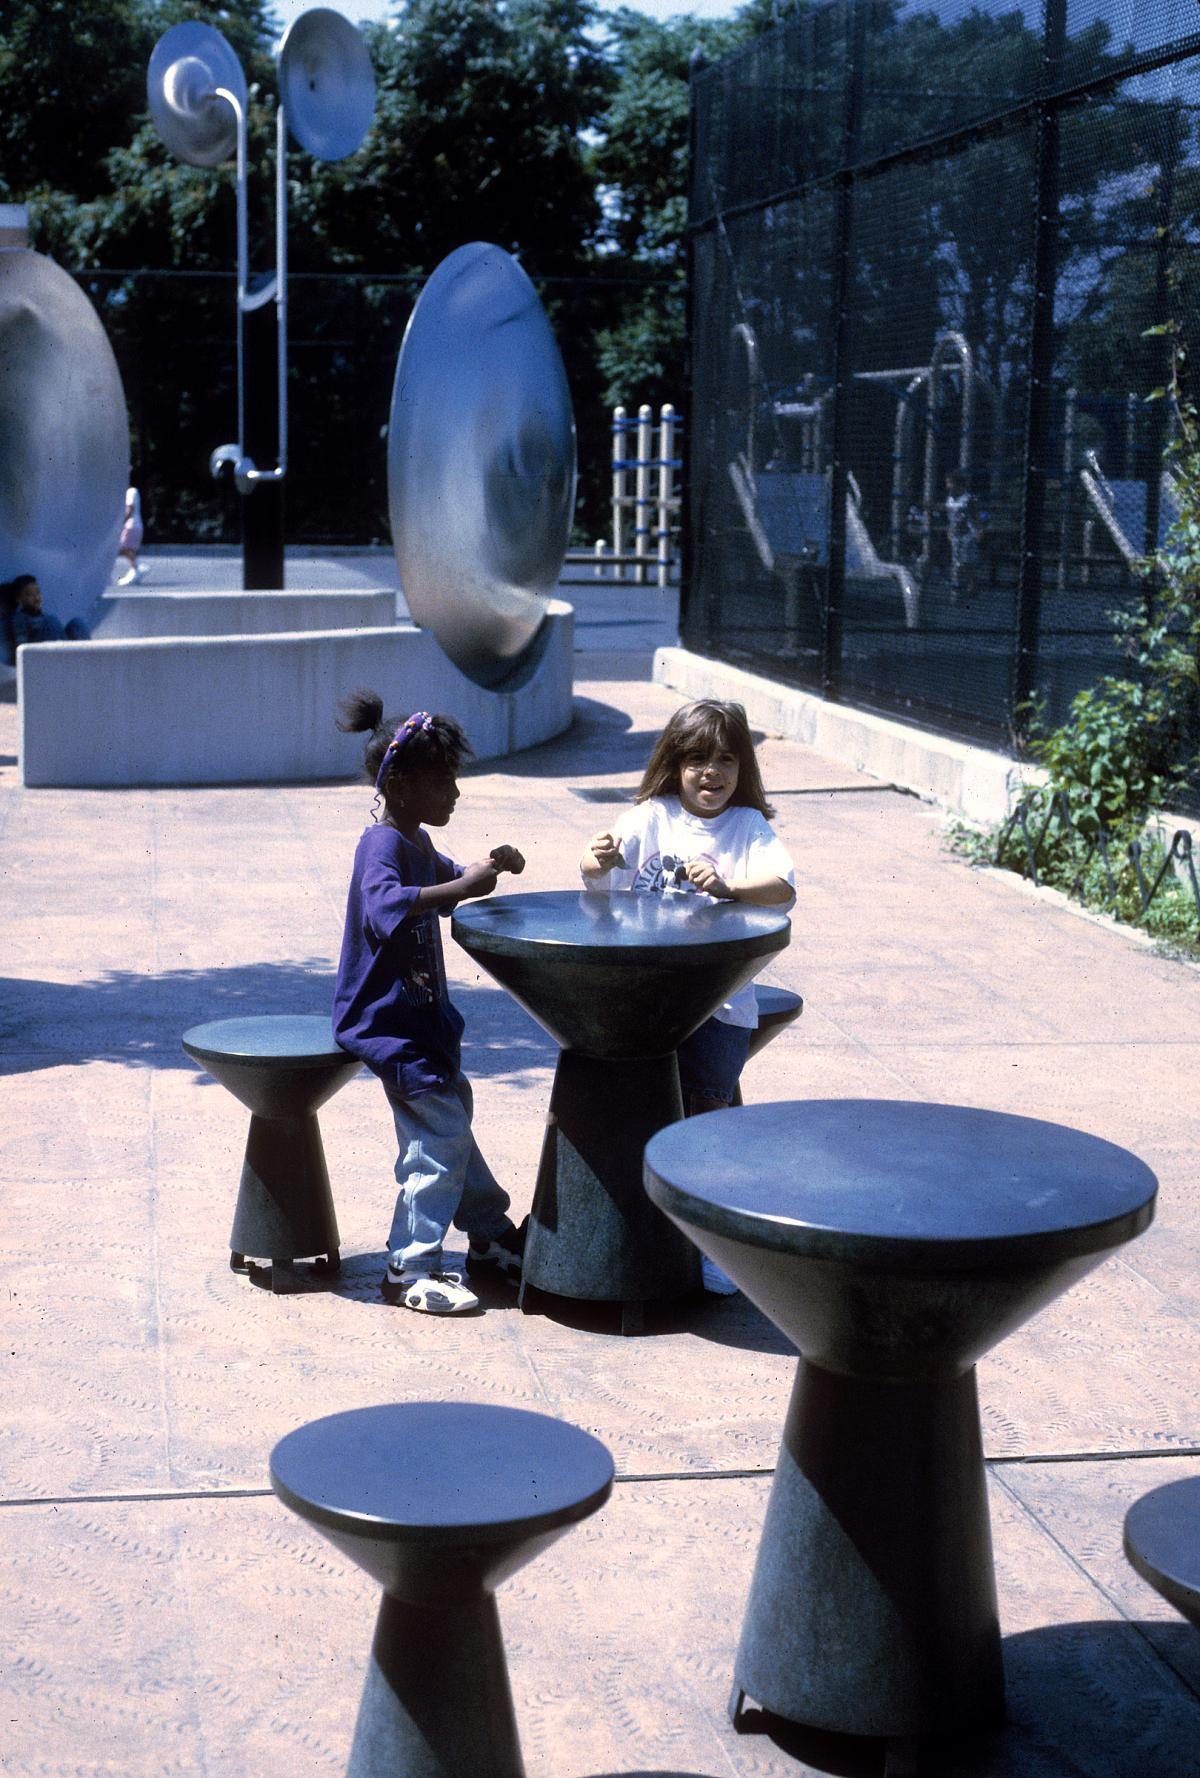 Two girls play at a mushroom-shaped table